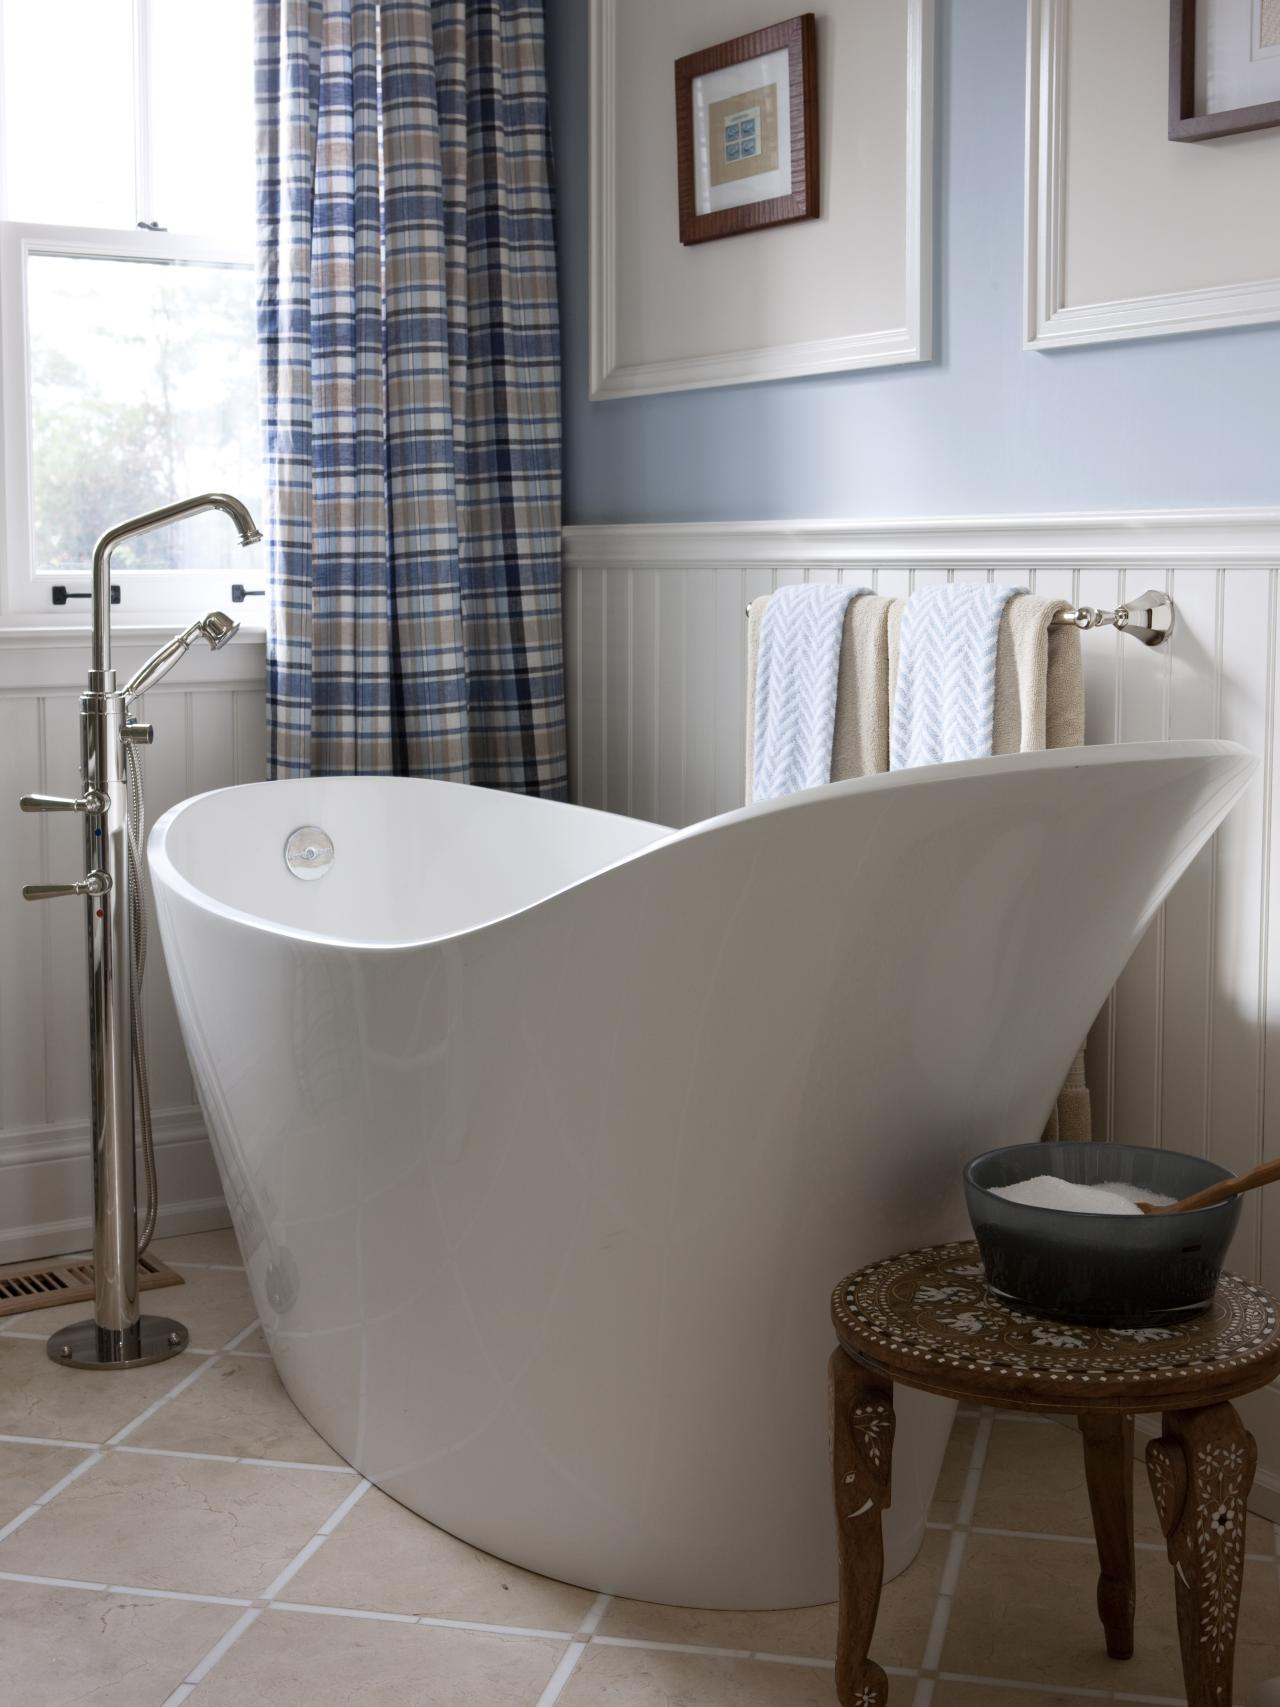 Infinity Bathtub Design Ideas Pictures  Tips From HGTV HGTV - Small bathroom bathtub ideas